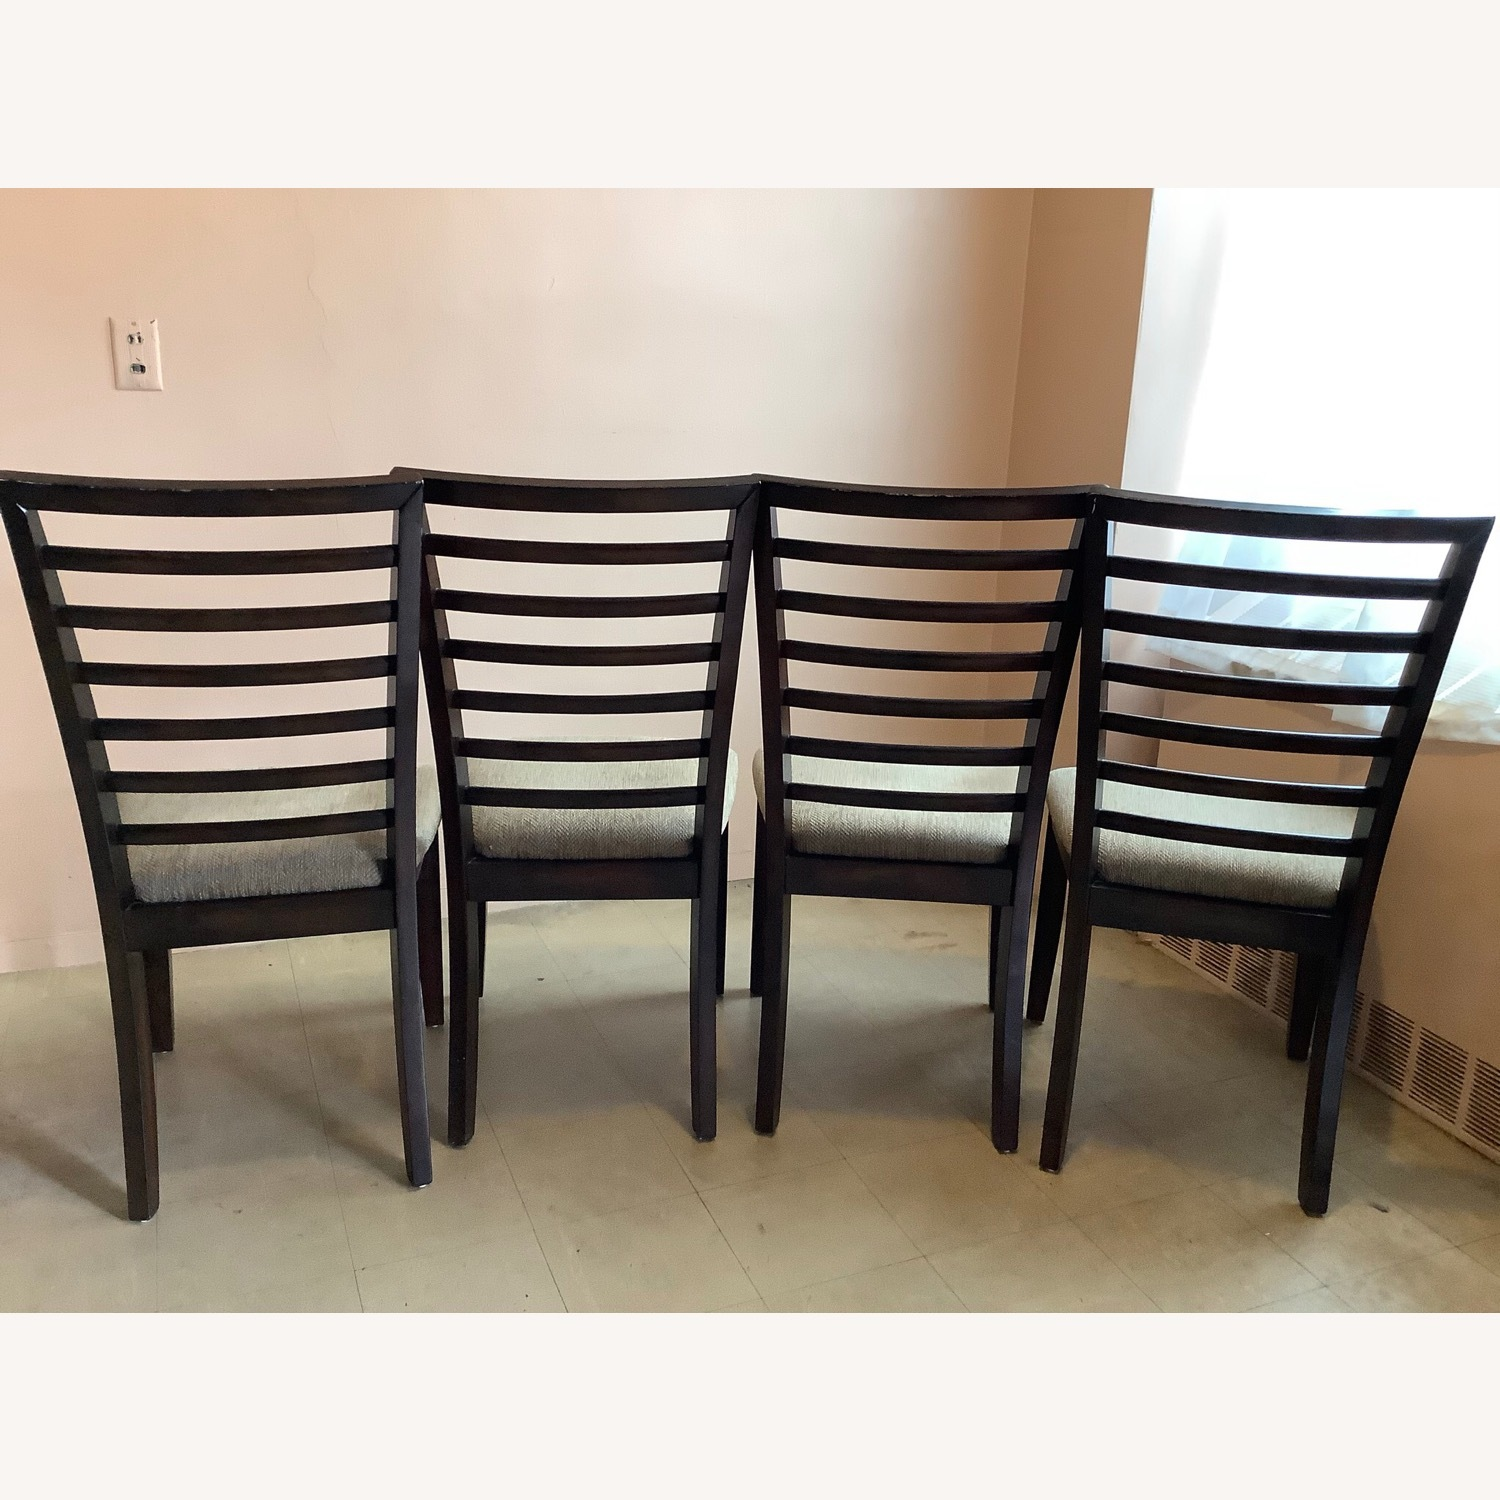 Raymour & Flanigan Butterfly Leaf Table with 4 chairs - image-3